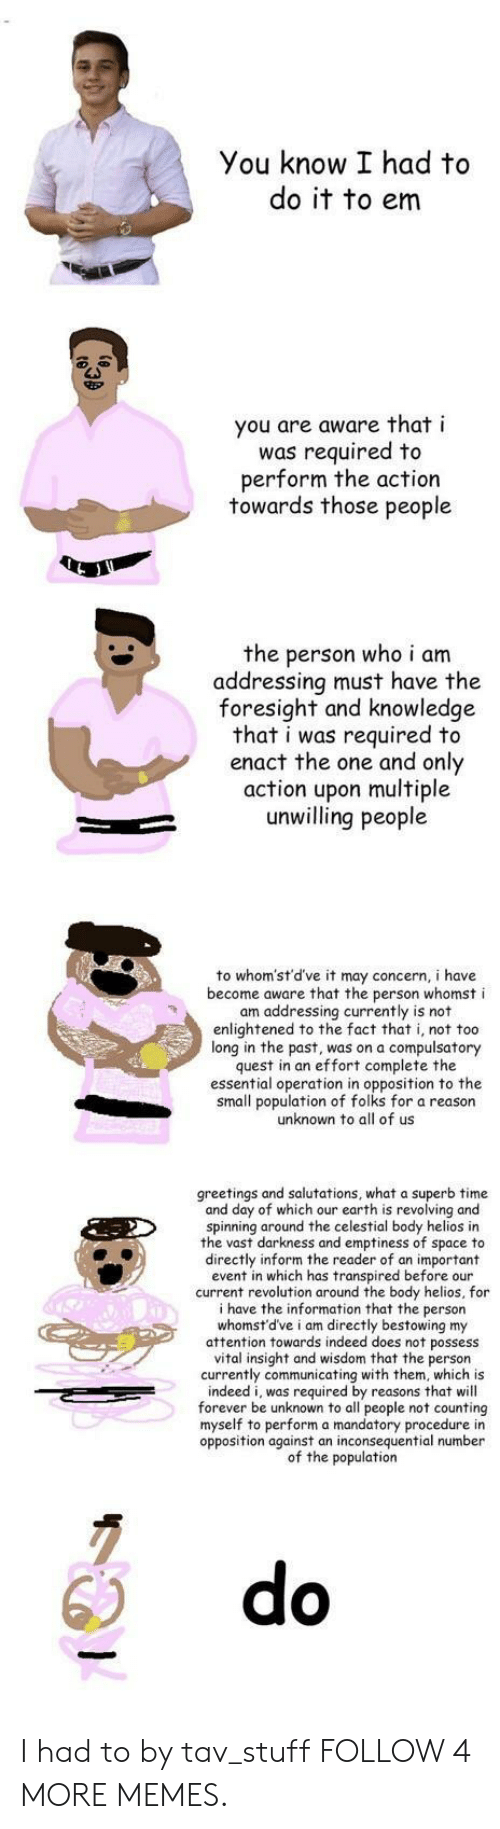 I Had To Do It To Em: You know I had to  do it to em  you are aware that i  was required to  perform the action  towards those people  the person who i am  addressing must have the  foresight and knowledge  that i was required to  enact the one and only  action upon multiple  unwilling people  to whom'st'd've it may concern, i have  become aware that the person whomst i  am addressing currently is not  enlightened to the fact that i, not too  long in the past, was on a compulsatory  quest in an effort complete the  essential operation in opposition to the  small population of folks for a reason  unknown to all of us  greetings and salutations, what a superb time  and day of which our earth is revolving and  spinning around the celestial body helios in  the vast darkness and emptiness of  directly inform the reader of an important  event in which has transpired before our  current revolution around the body helios, for  i have the information that the person  whomst'd've i am directly bestowing my  attention towards indeed does not  vital insight and wisdom that the person  currently communicating with them, which is  indeed i, was required by reasons that will  forever be unknown to all people not counting  myself to perform a mandatory procedure in  opposition against an inconsequential number  of the population  to  space  thpossess  do I had to by tav_stuff FOLLOW 4 MORE MEMES.